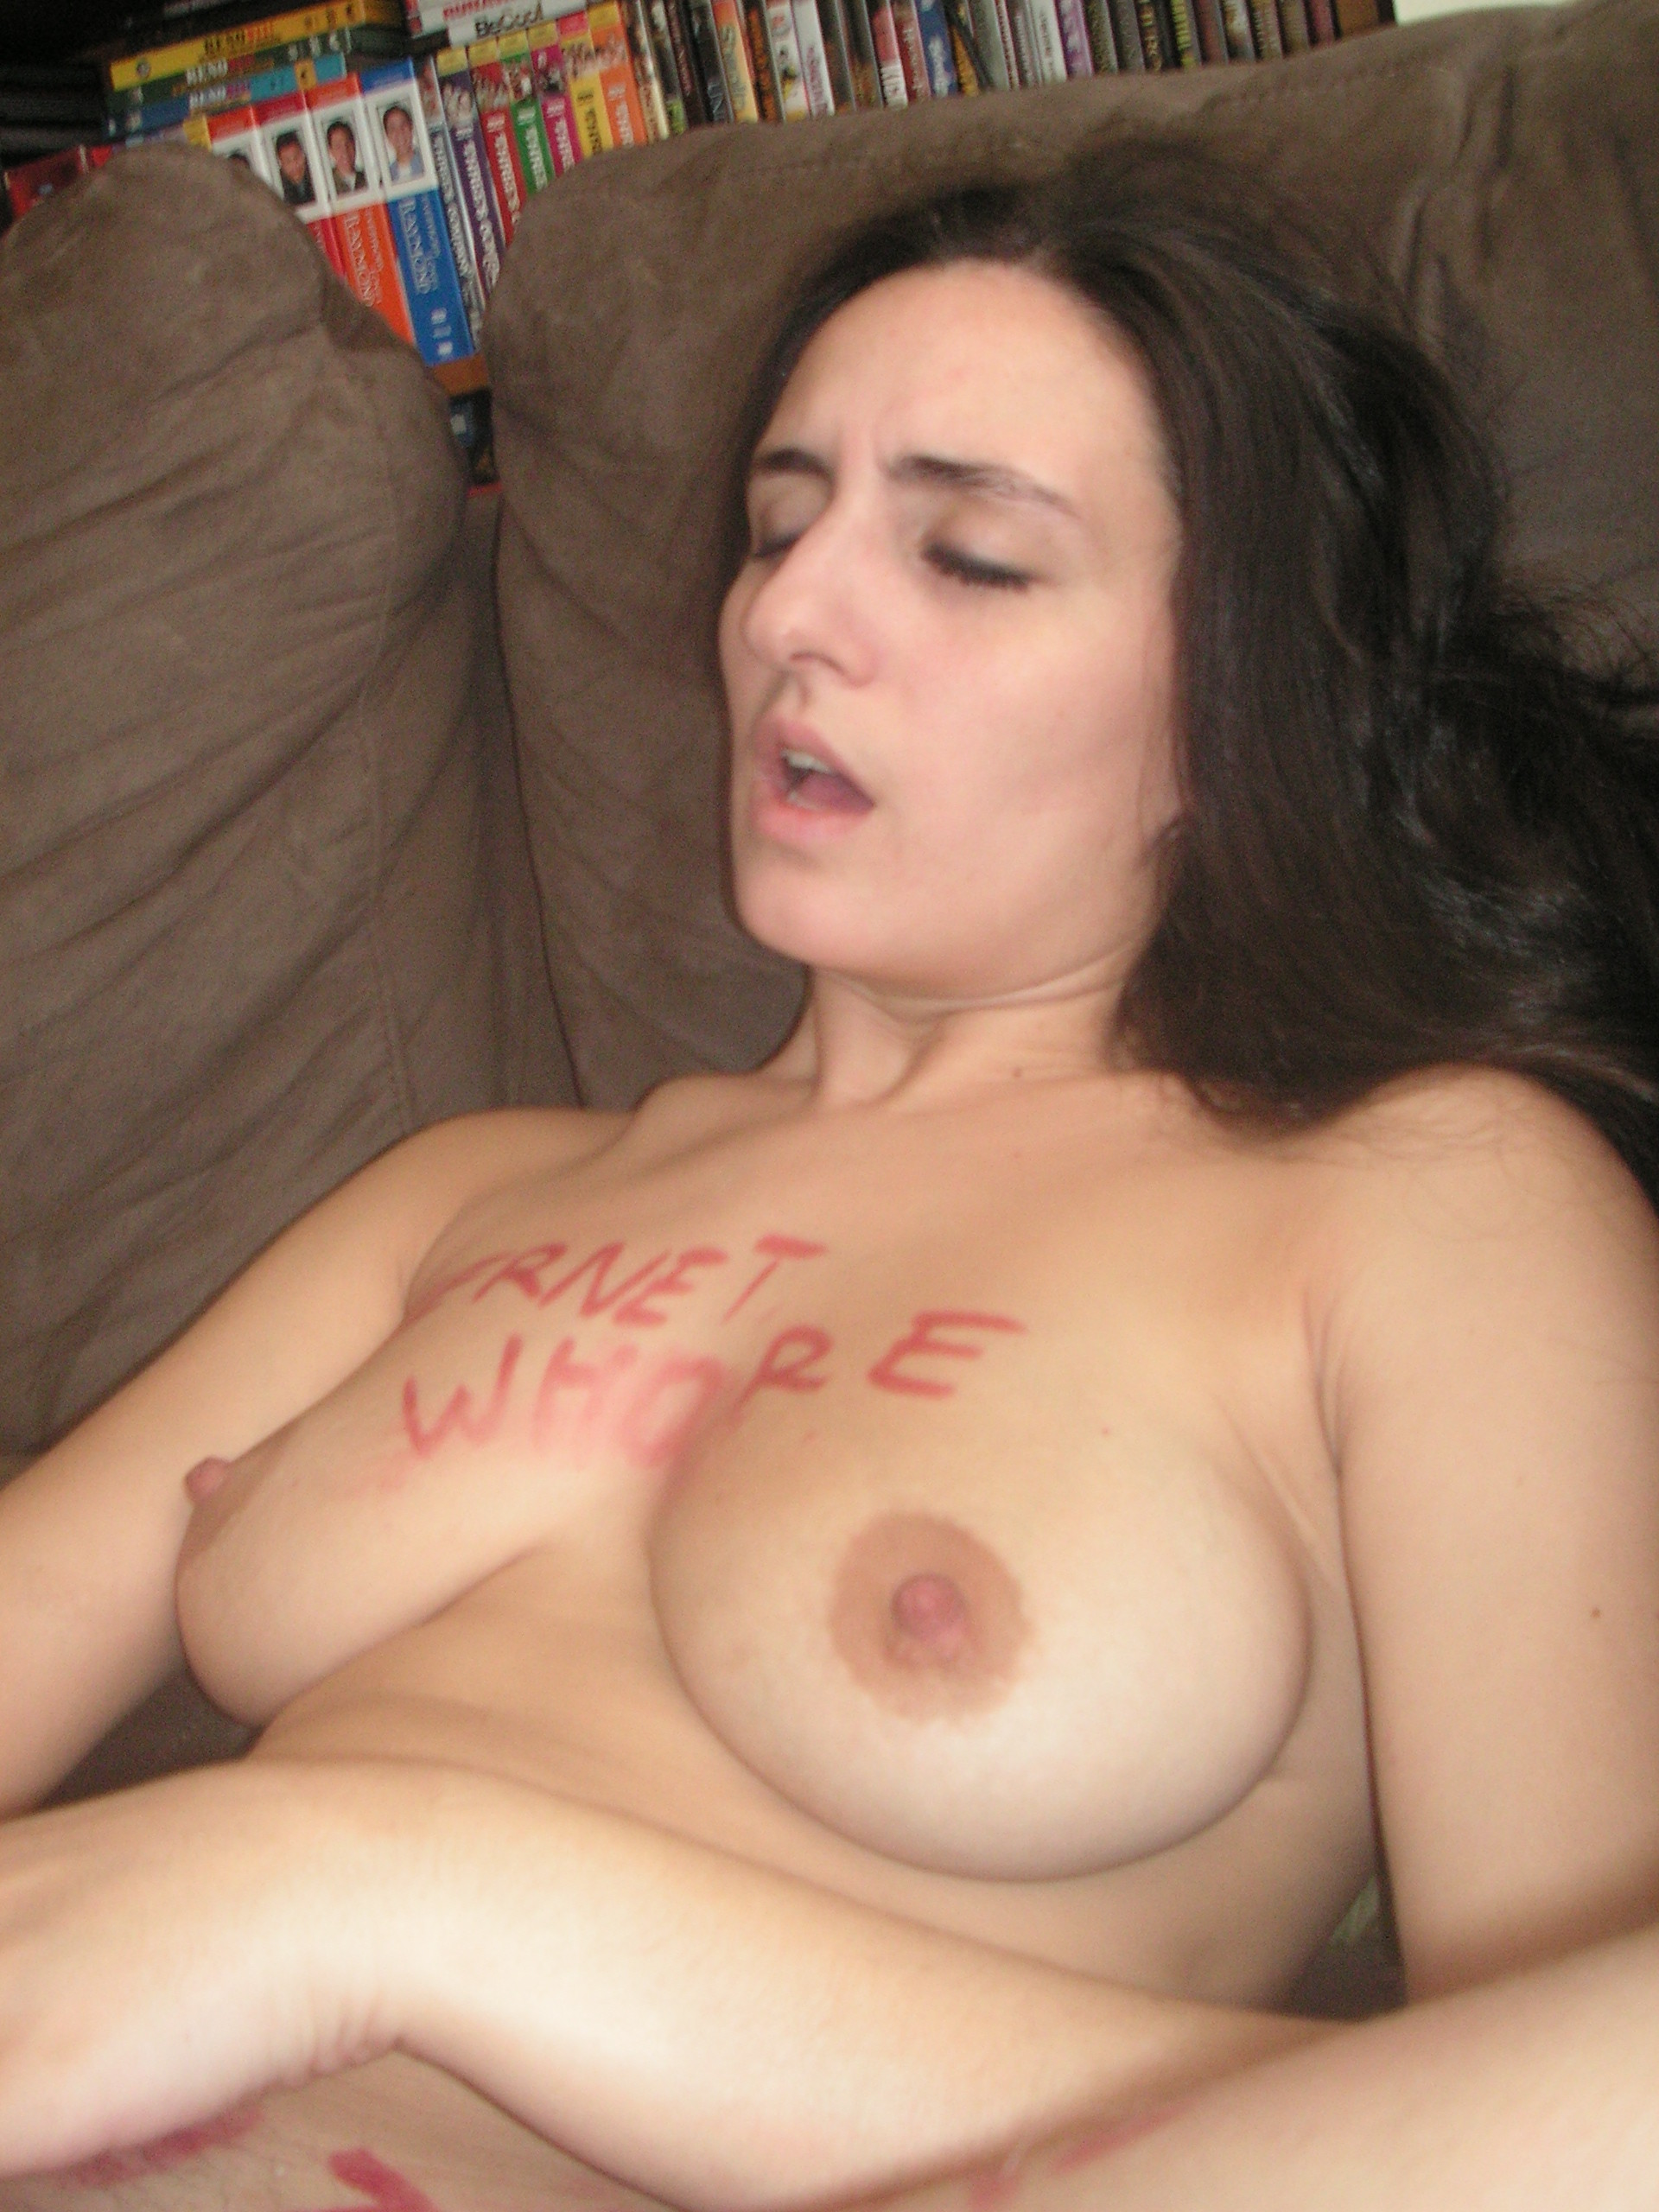 sucking indian nude breast